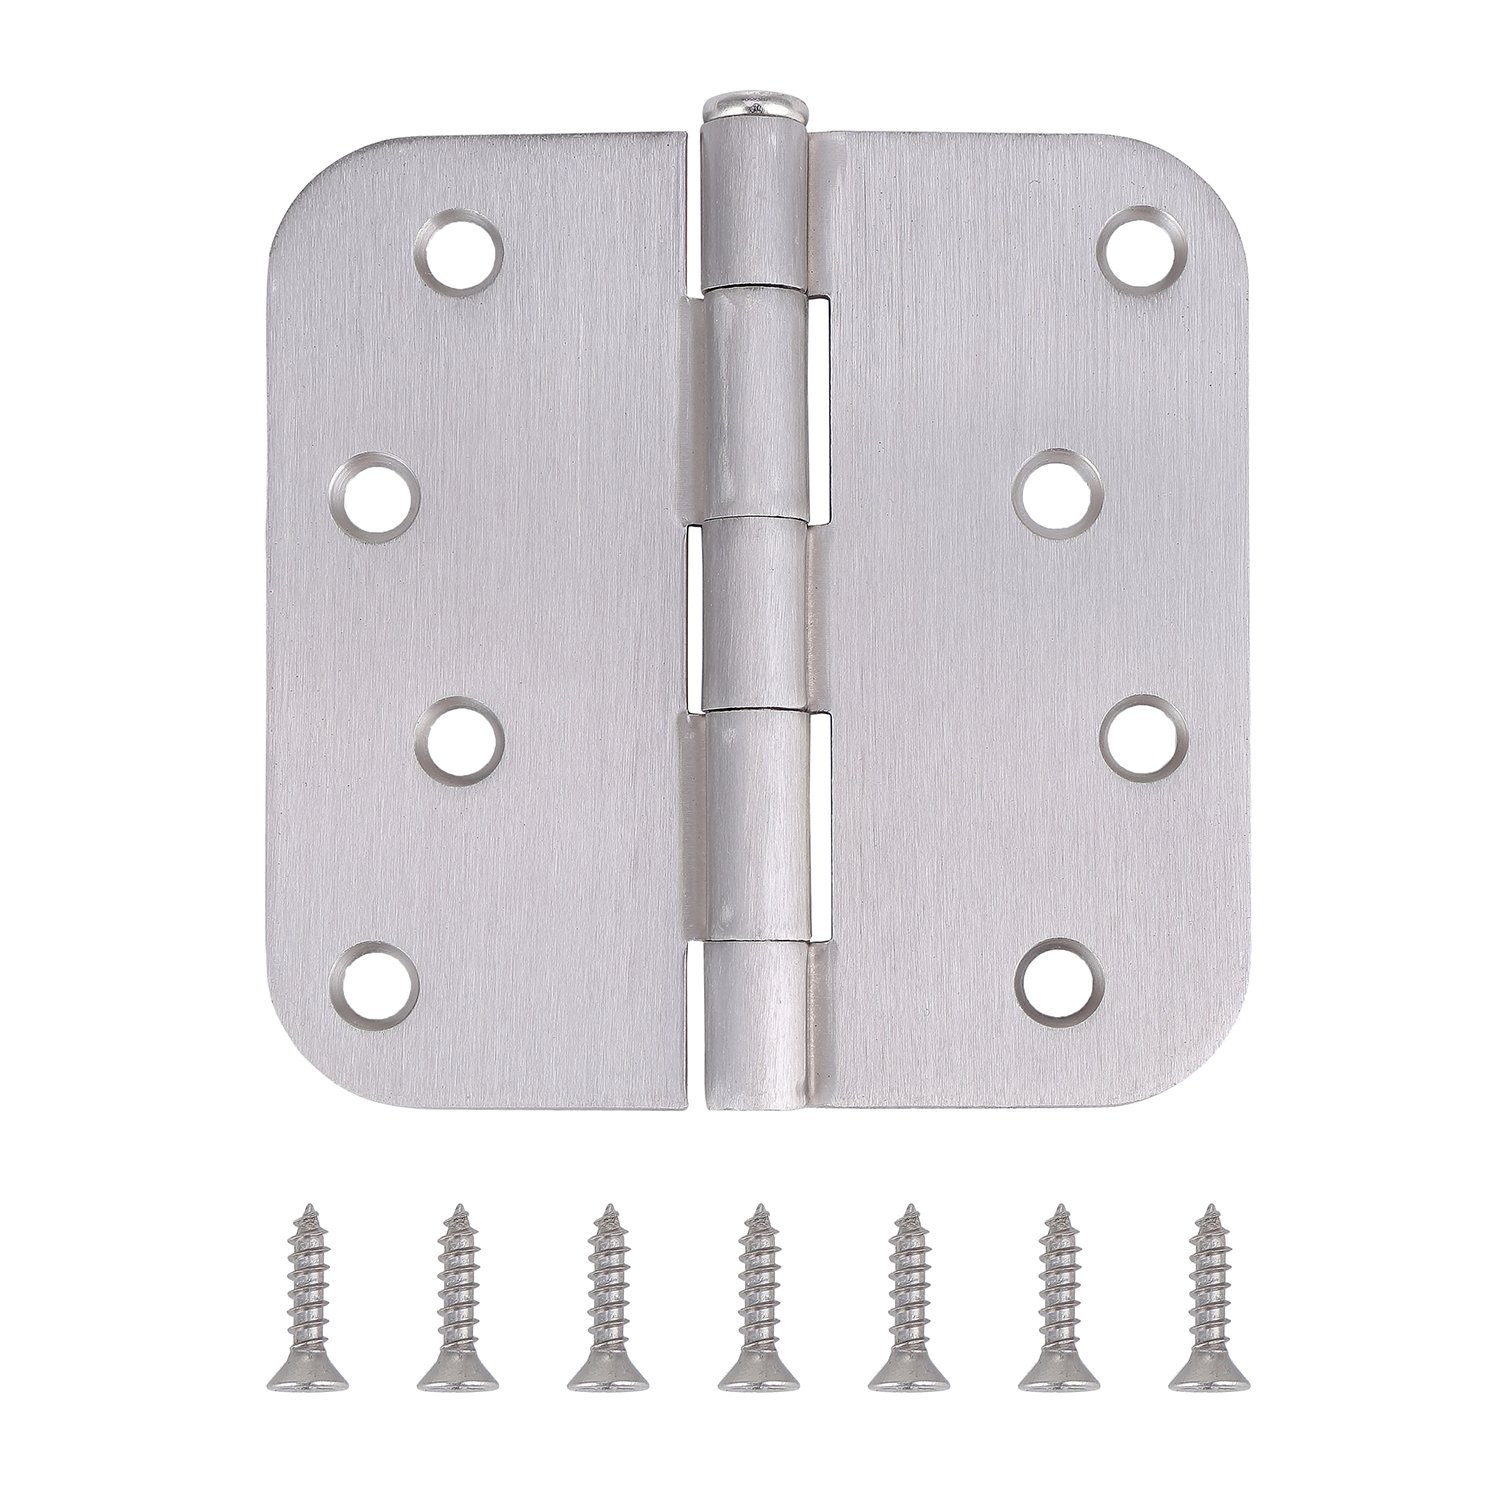 "Pack of 10 Residential Door Hinges - 4 Inch - Satin Nickel Finish - 5/8"" Radius Corner by Dependable Direct"